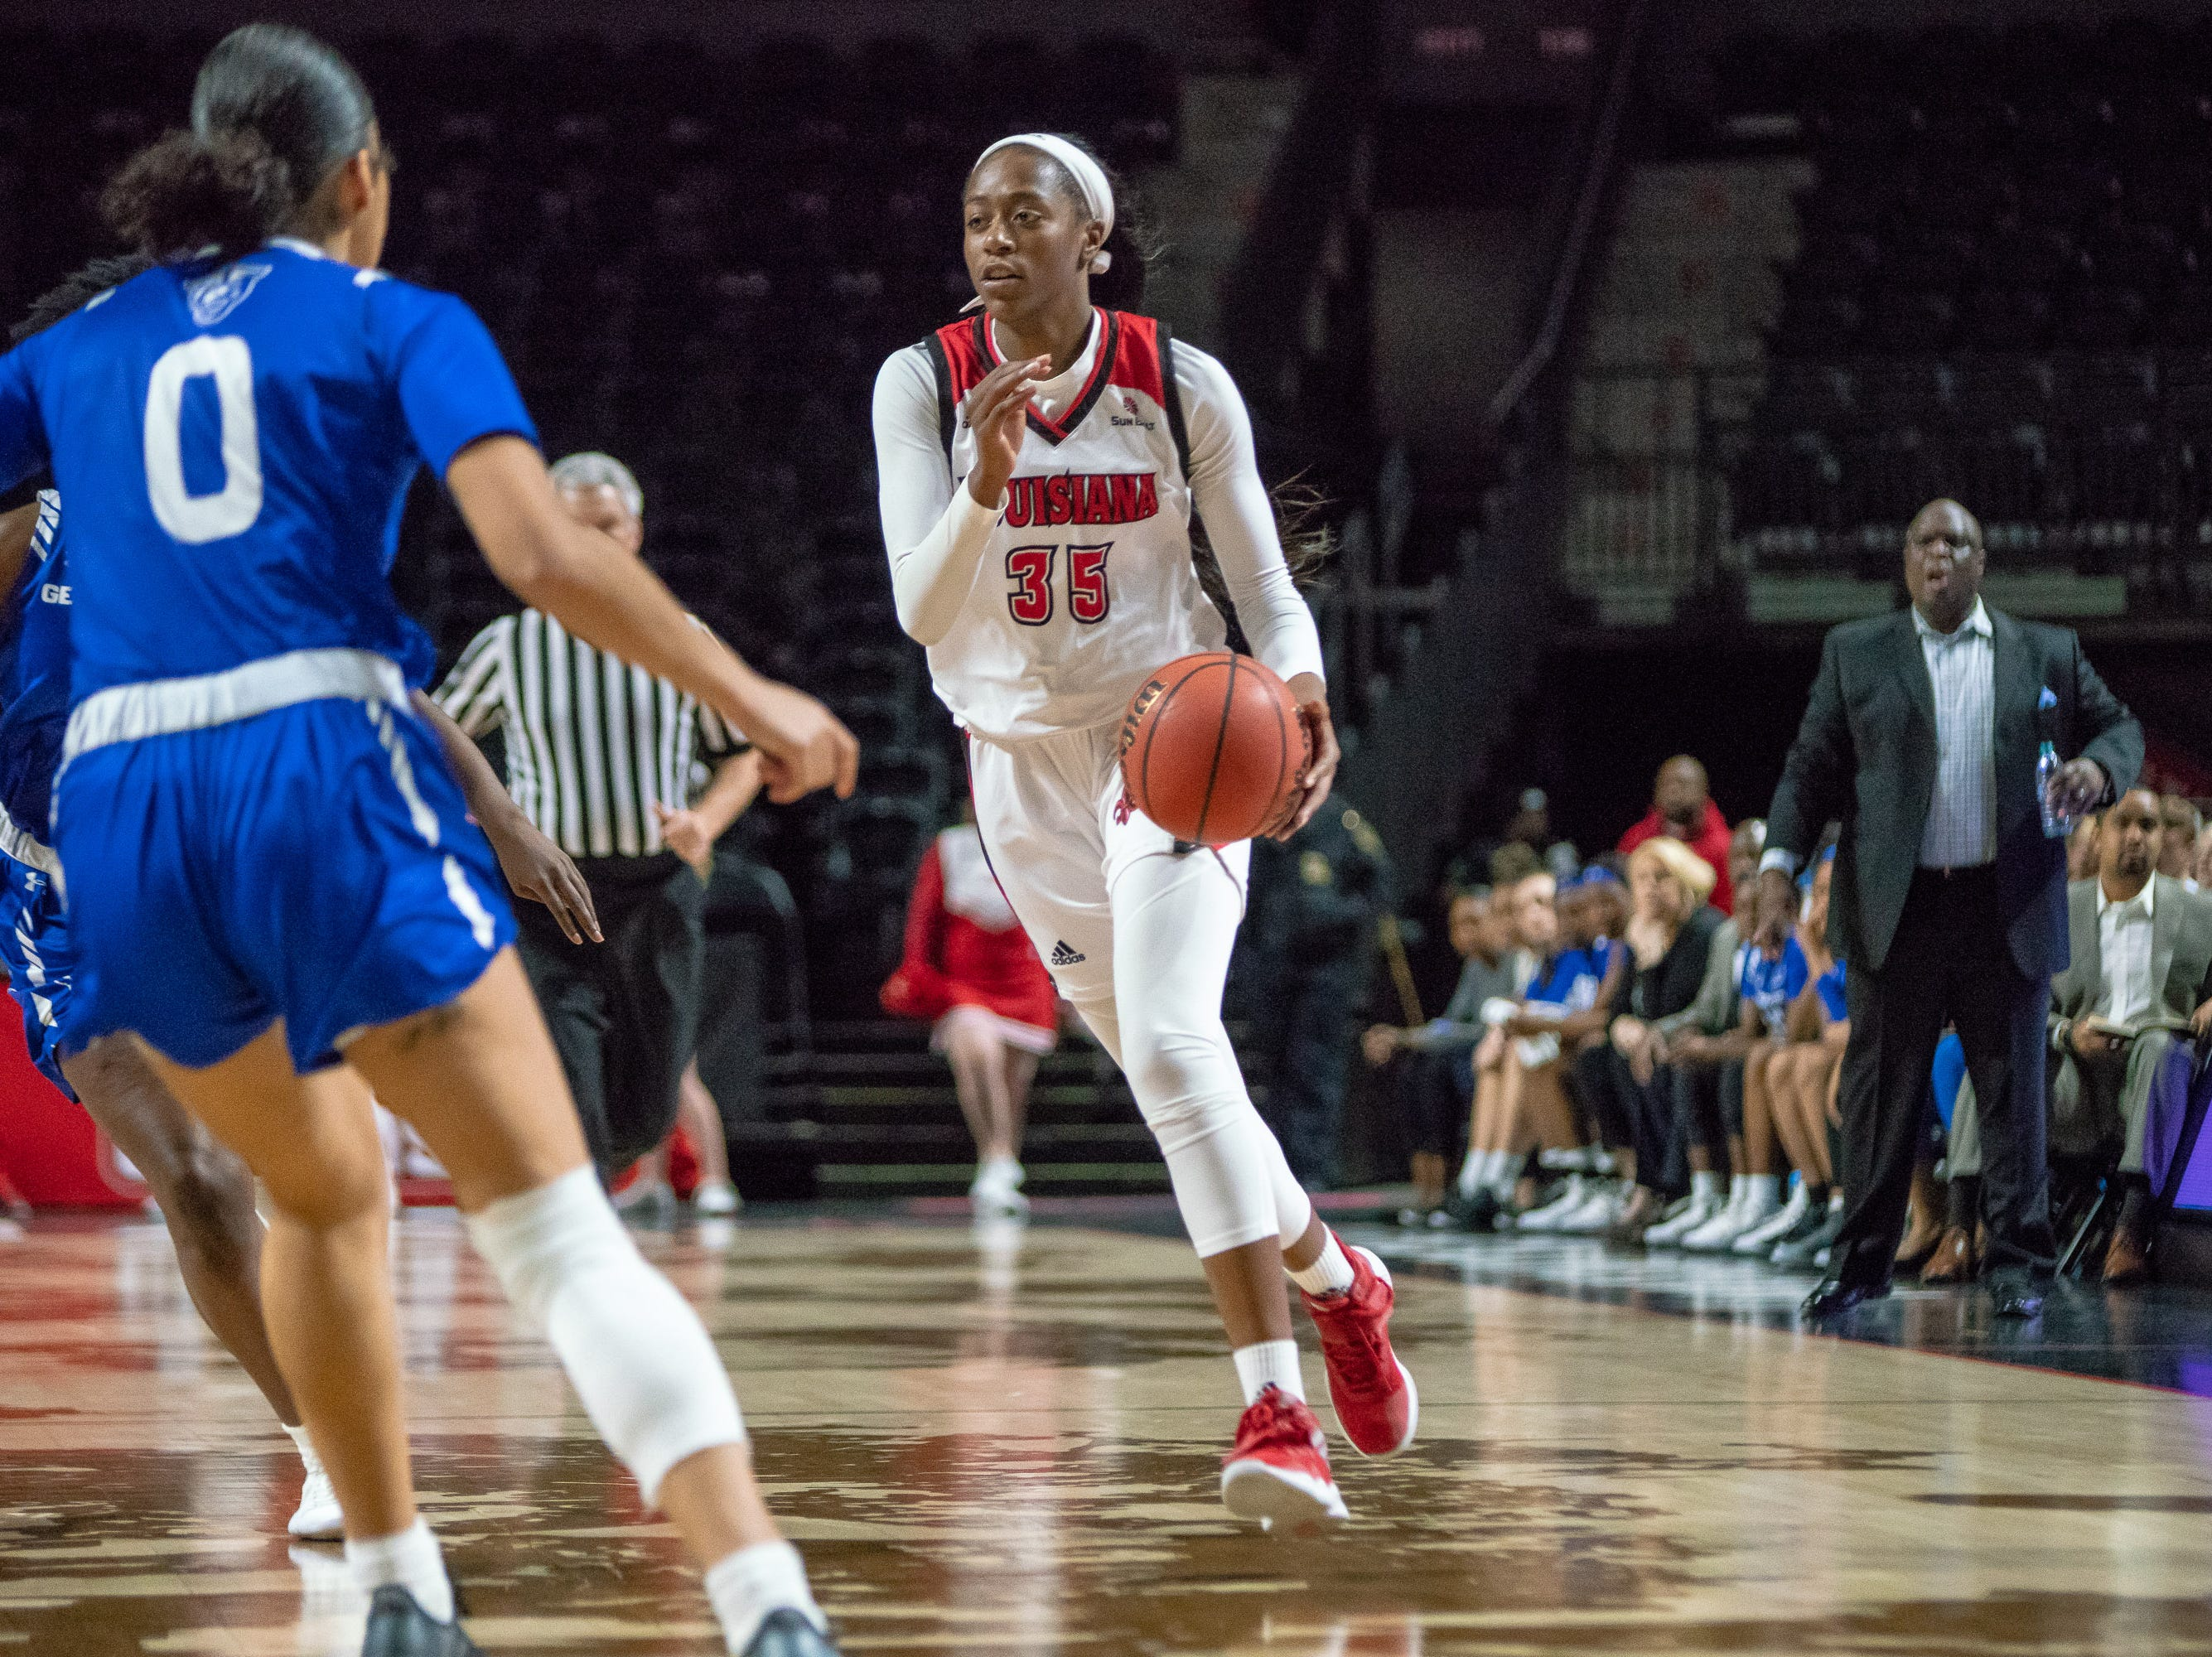 UL's Ty'Reona Doucet dribbles the ball down the court as the Ragin' Cajuns play against the Georgia State Panthers at the Cajundome on January 10, 2019.